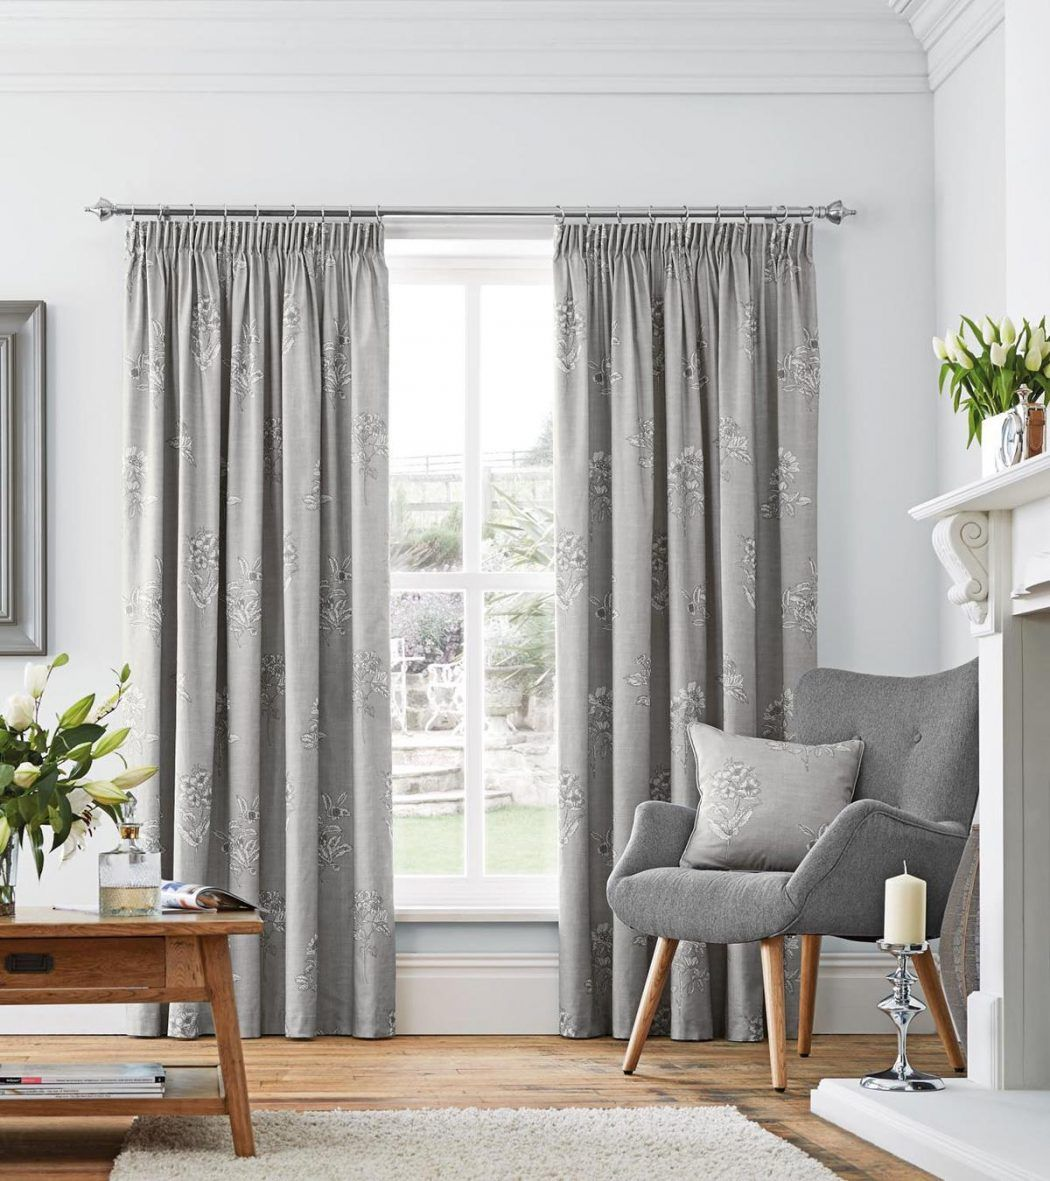 20 Hottest Curtain Design Ideas For 2020 Pouted Com Curtains Living Room Simple Bed Designs Quality Curtains #orange #and #gray #curtains #for #living #room